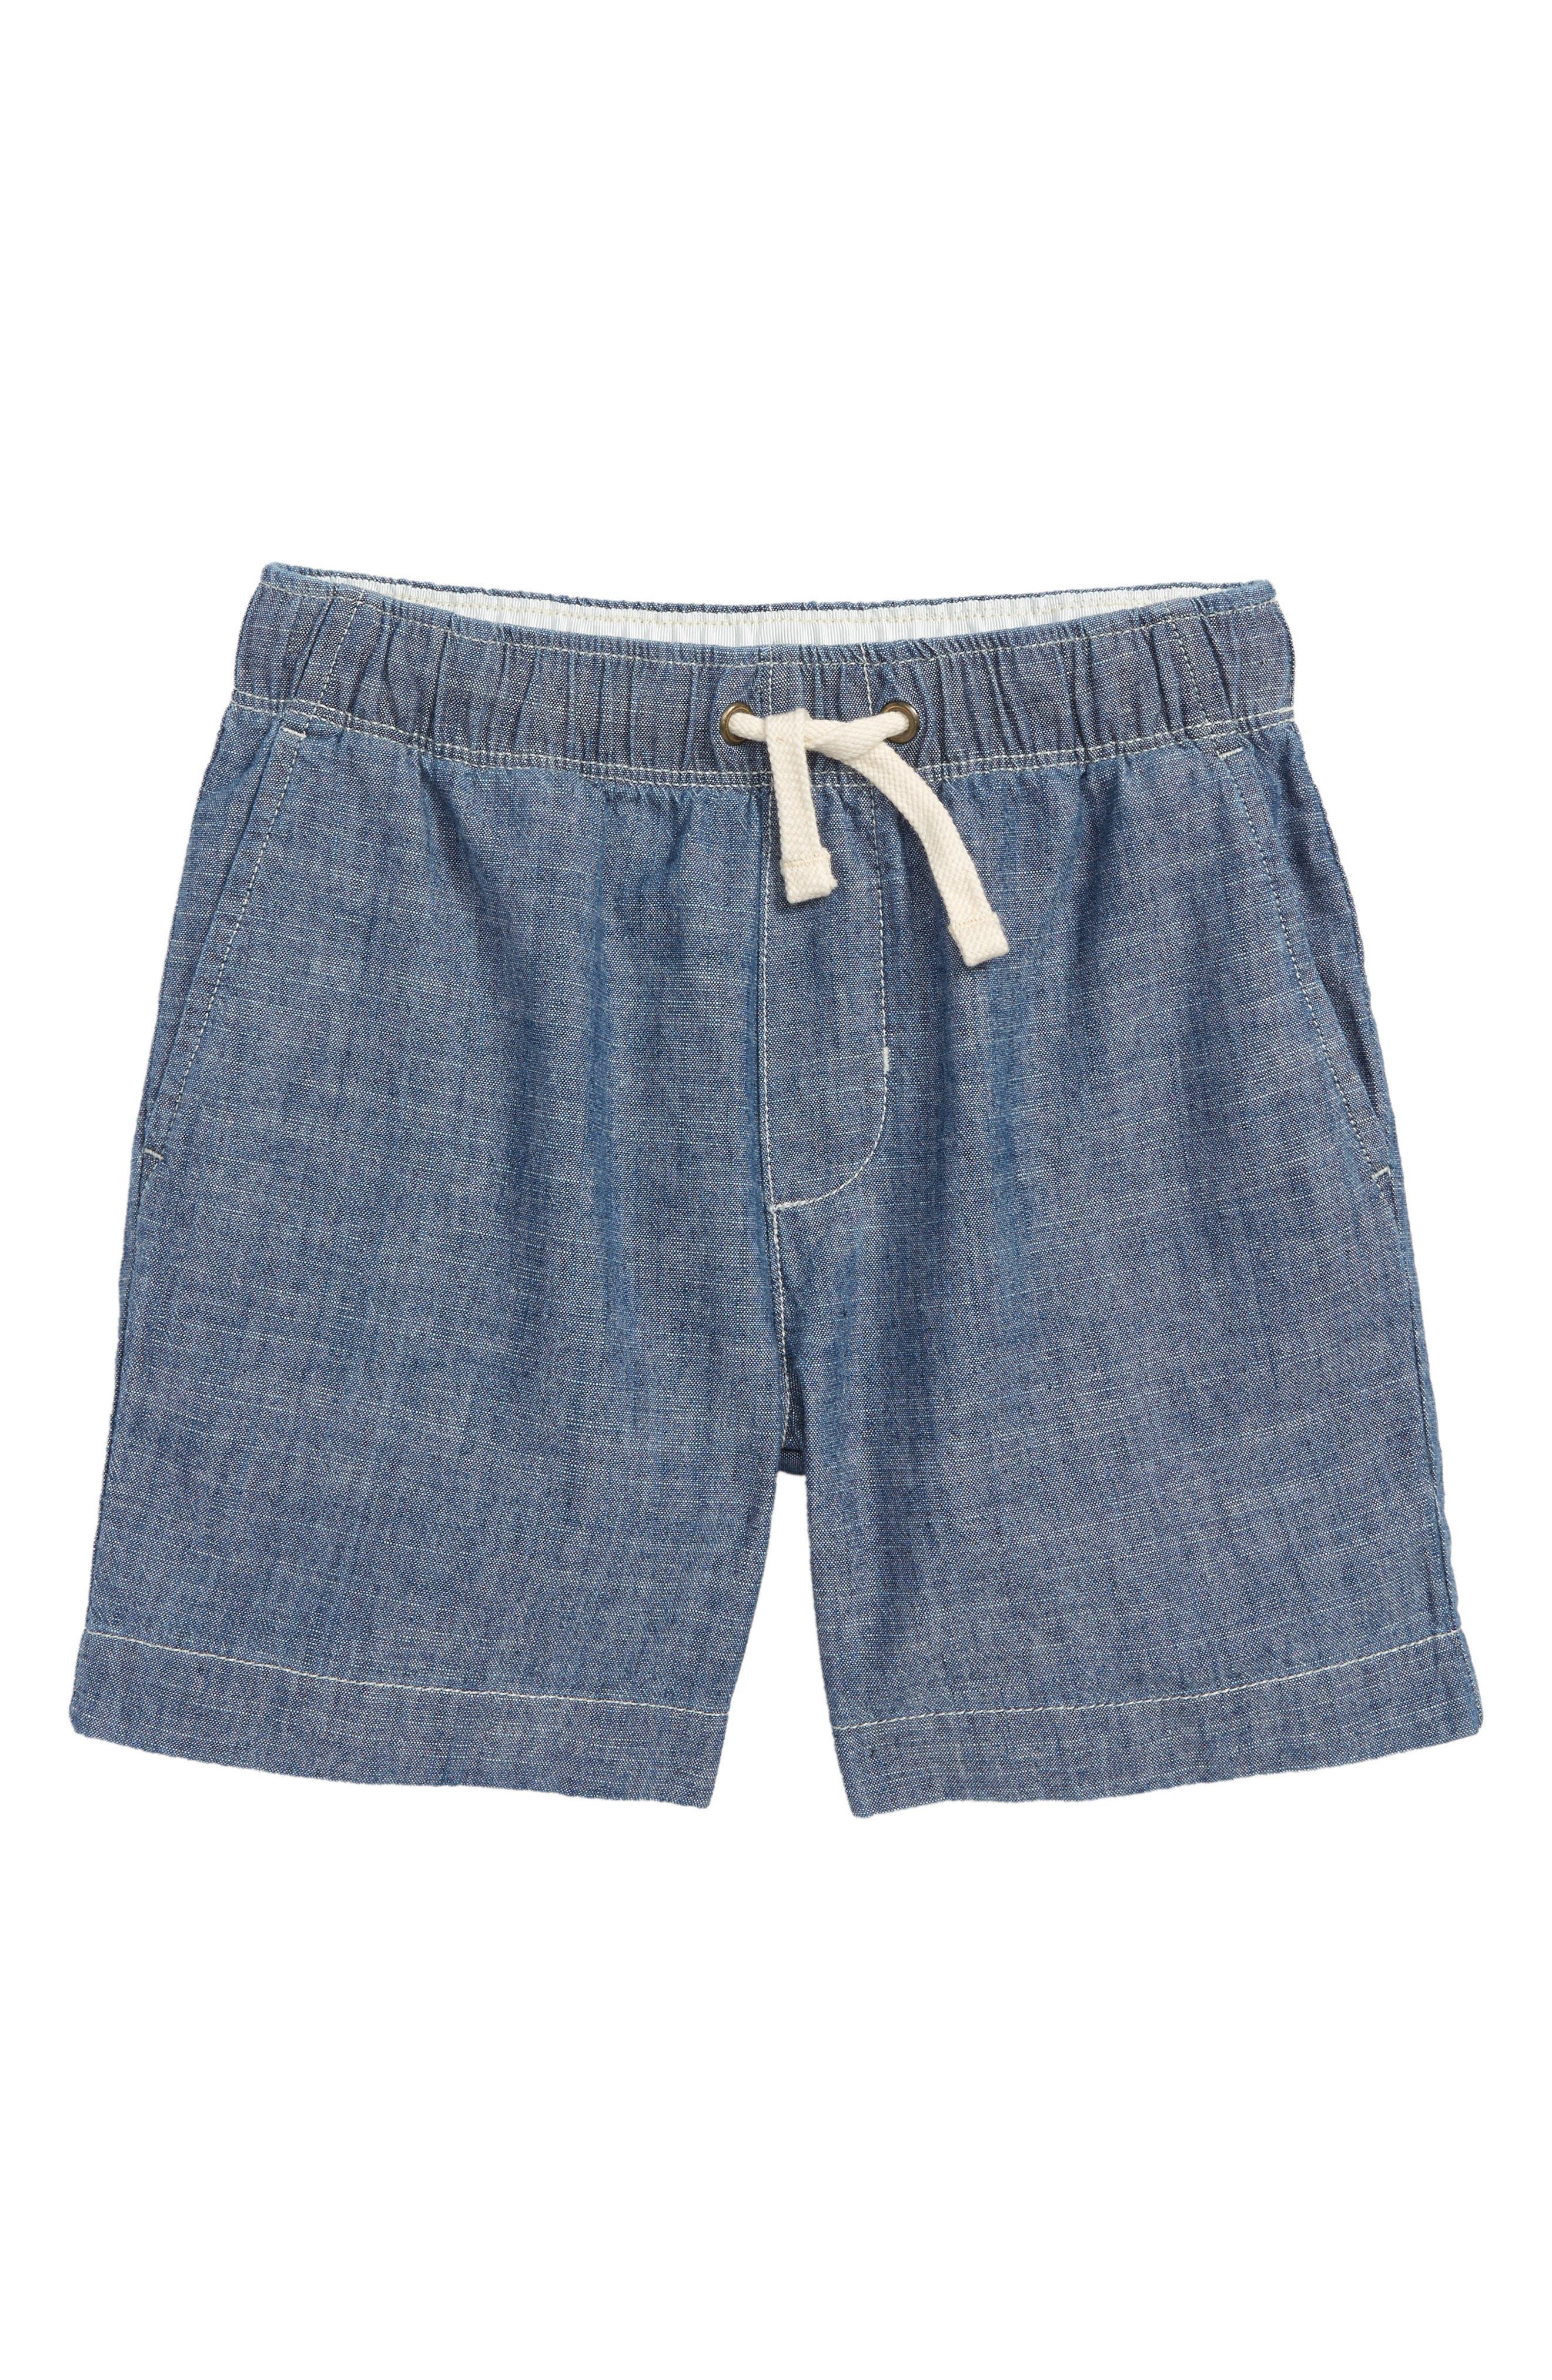 CREWCUTS BY J.CREW Dock Chambray Shorts, Main, color, 400